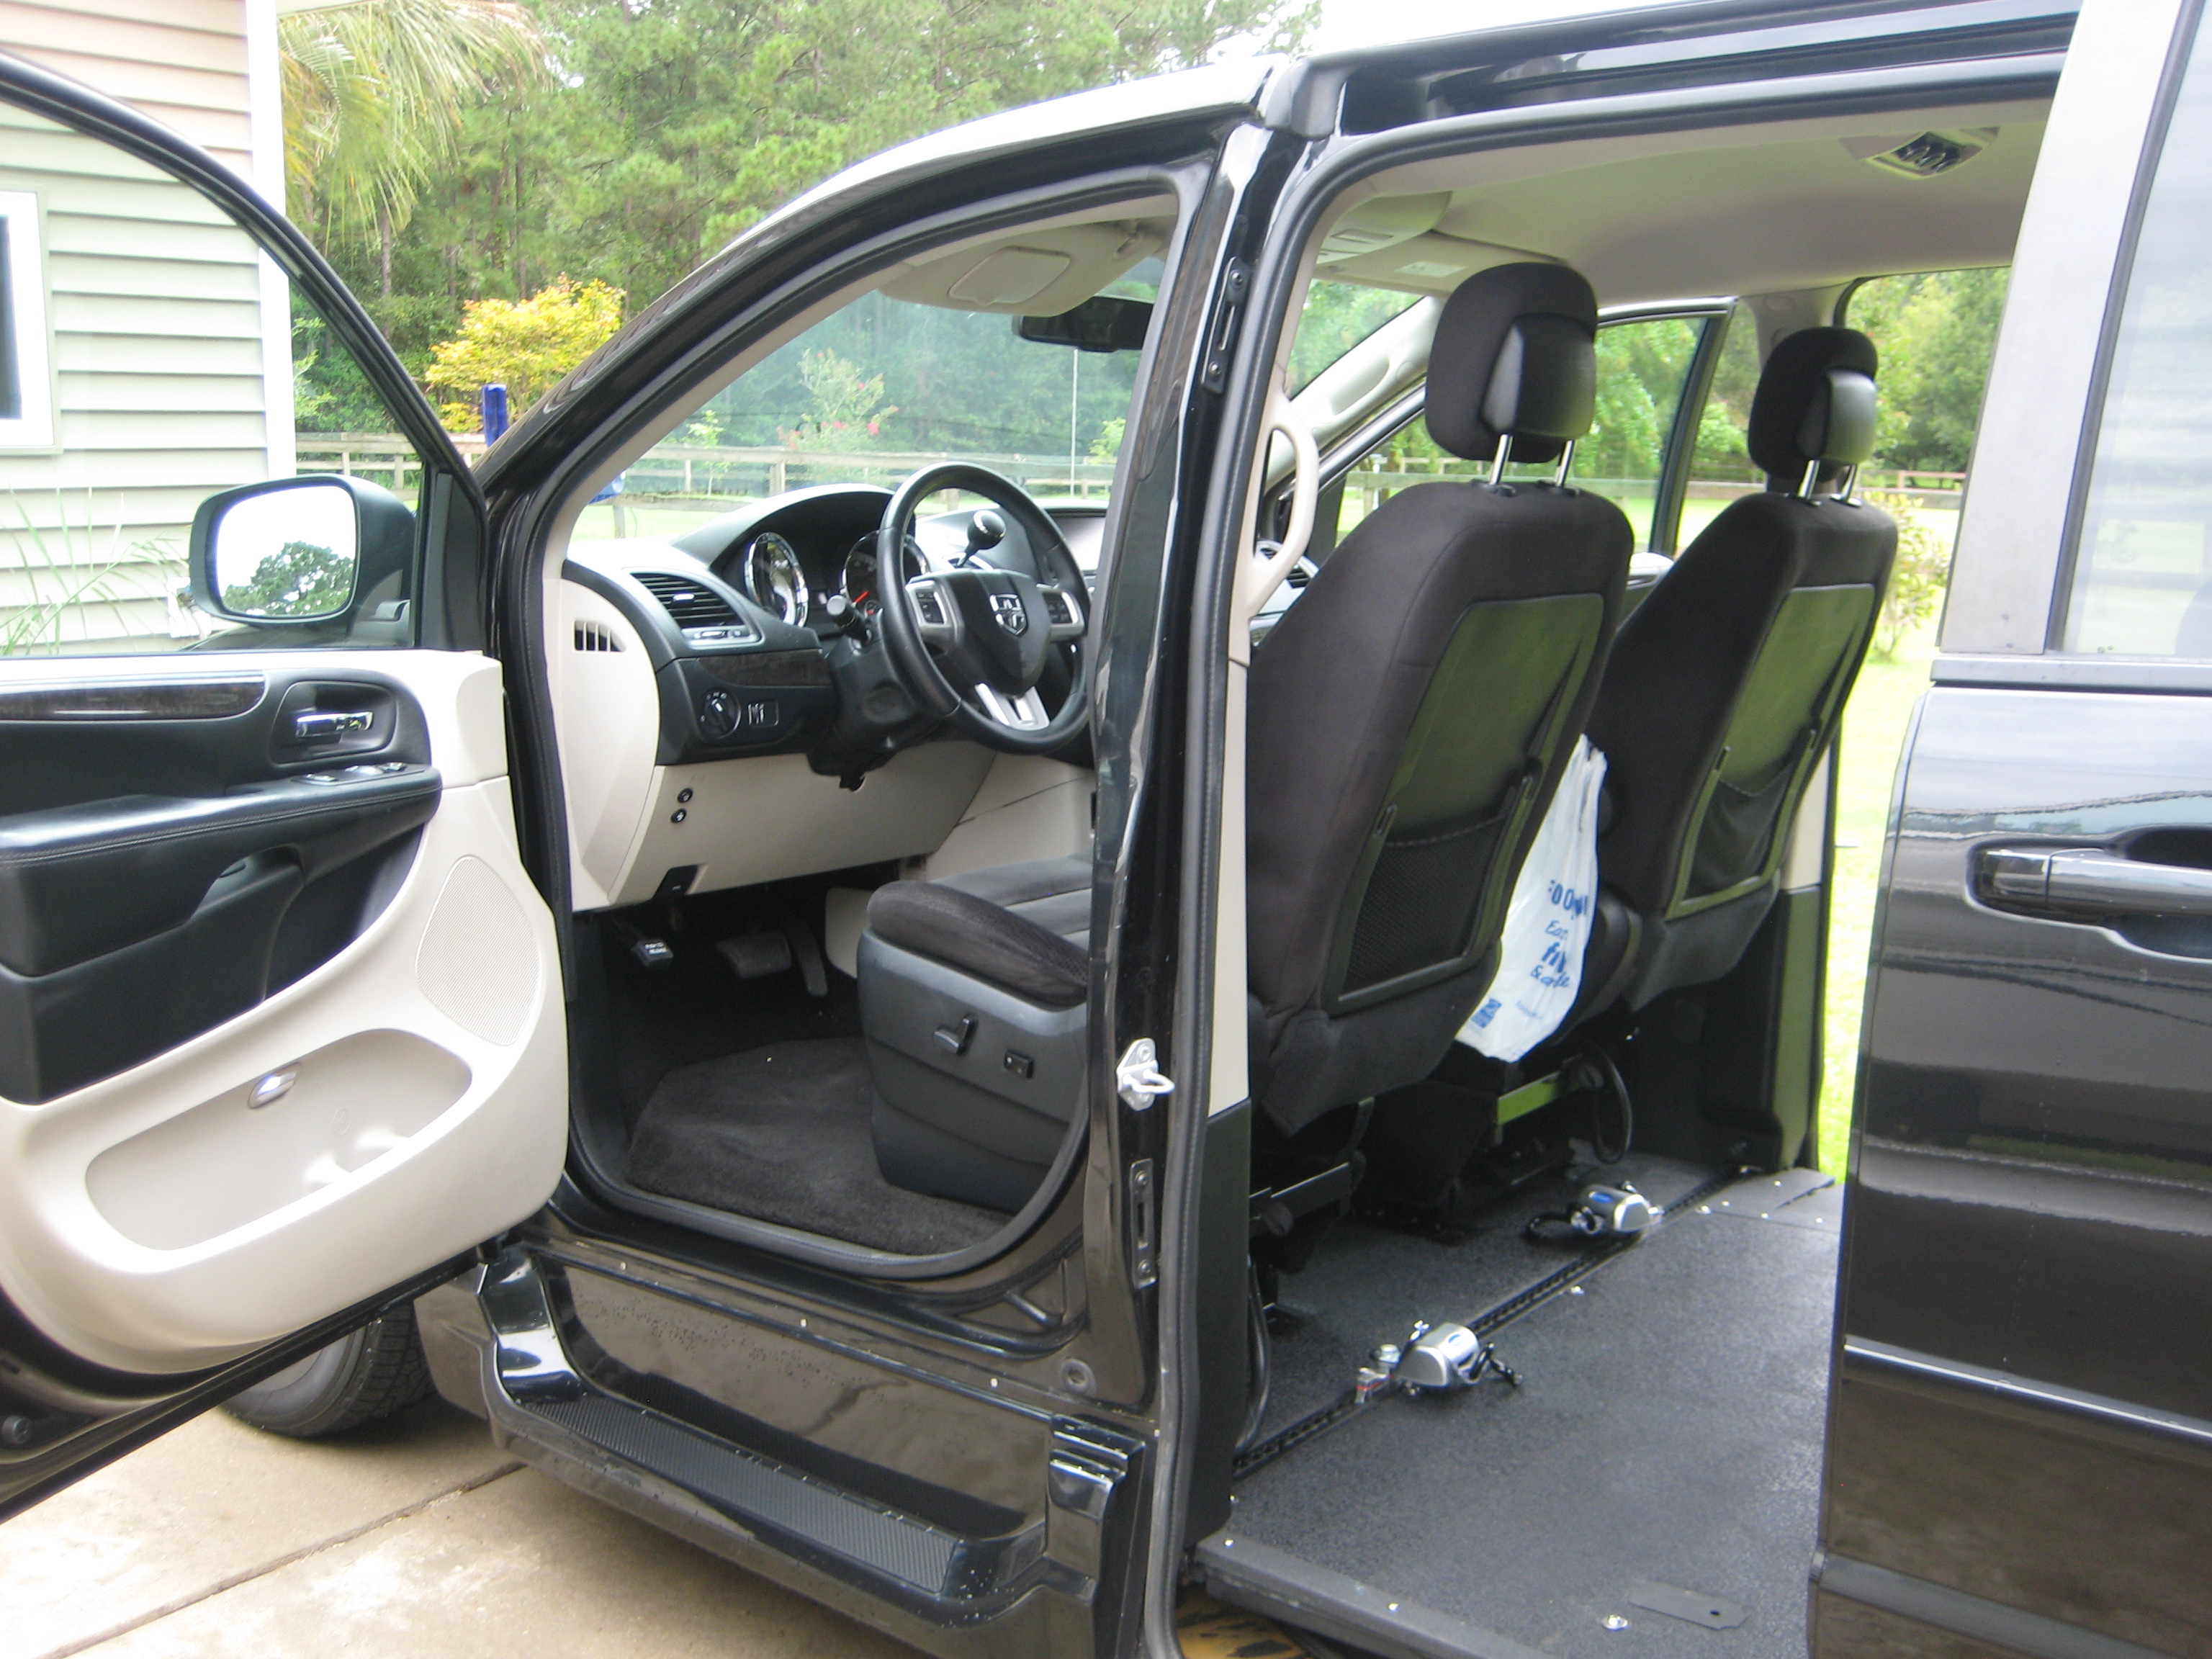 Photo 2 of Mobility Van